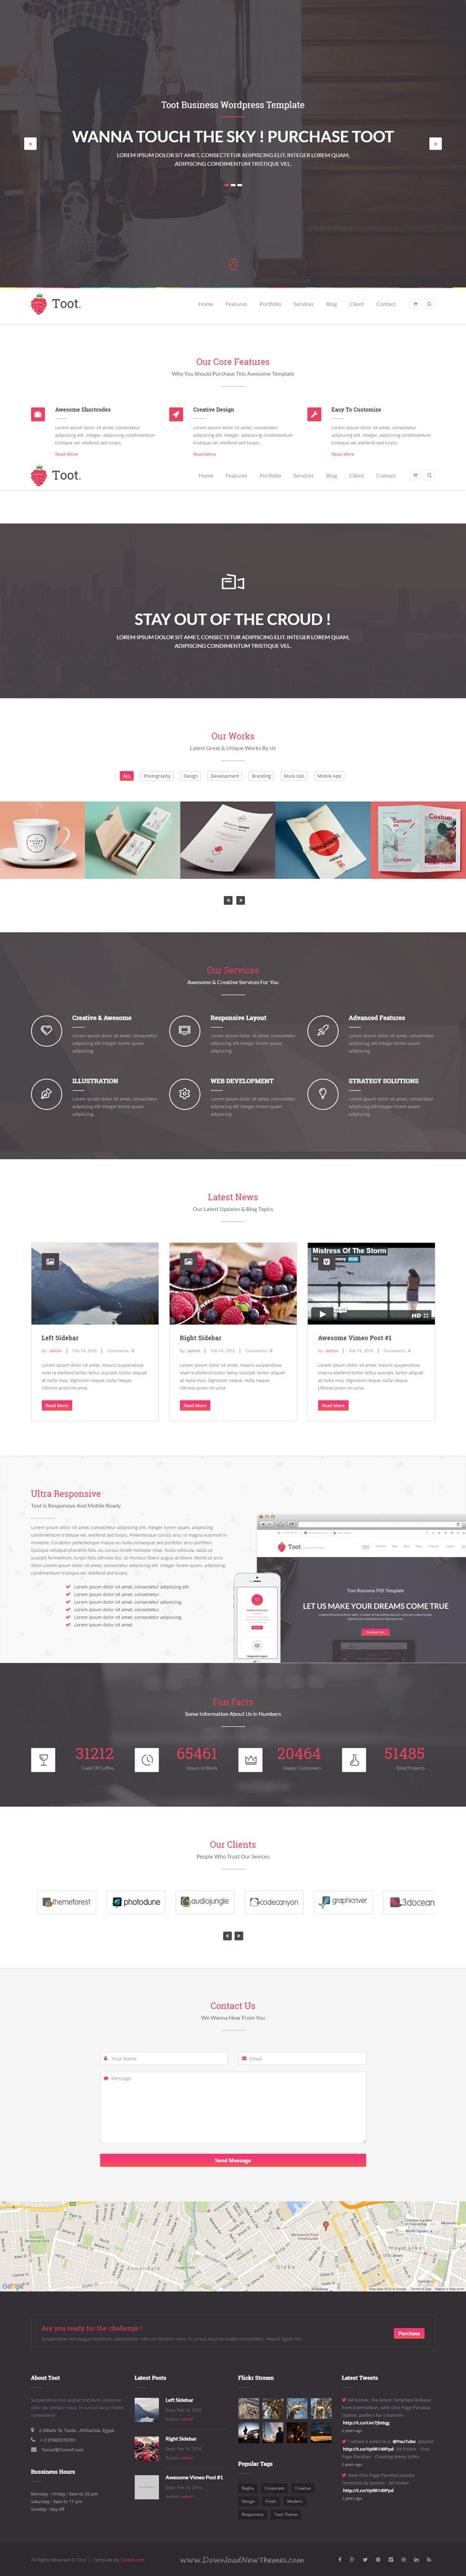 Toot is a clean and unique multipurpose WordPress Theme for all kinds of sites & business. It comes in ready to use +25 awesome predefined homepages to pick your favorite. Demo #onepage #wptheme